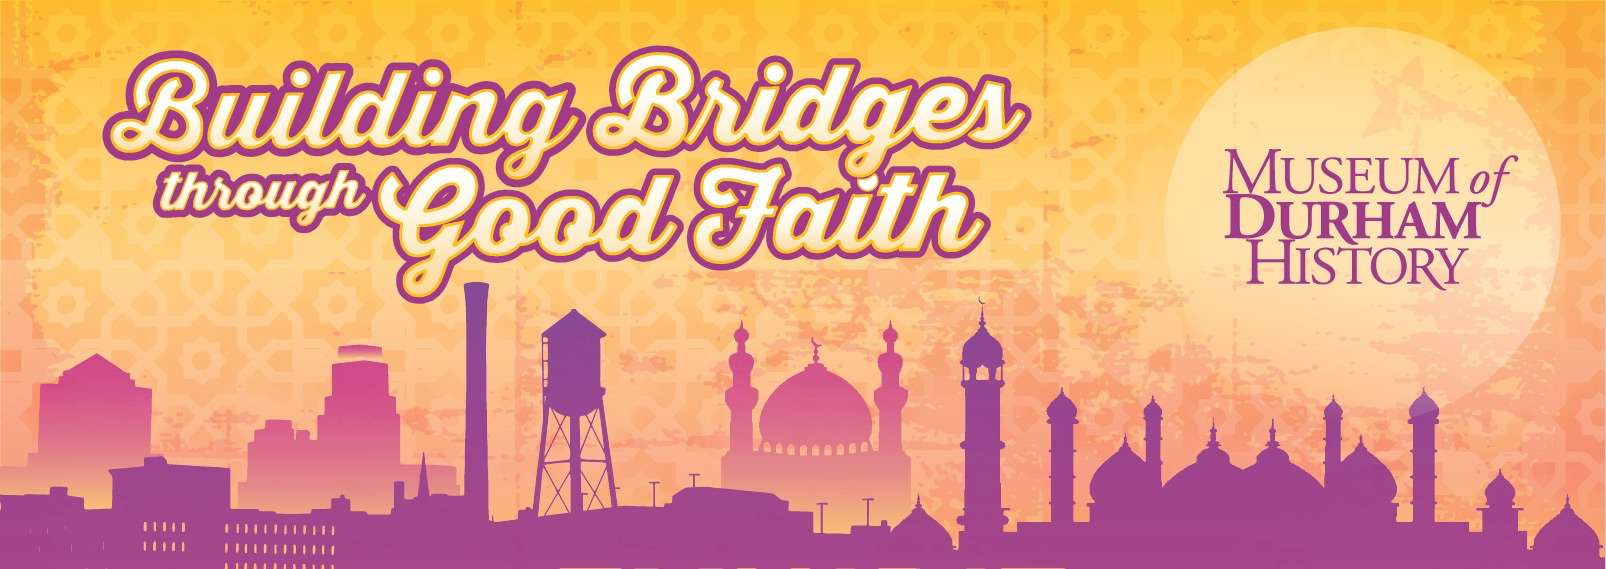 Building Bridges through Good Faith